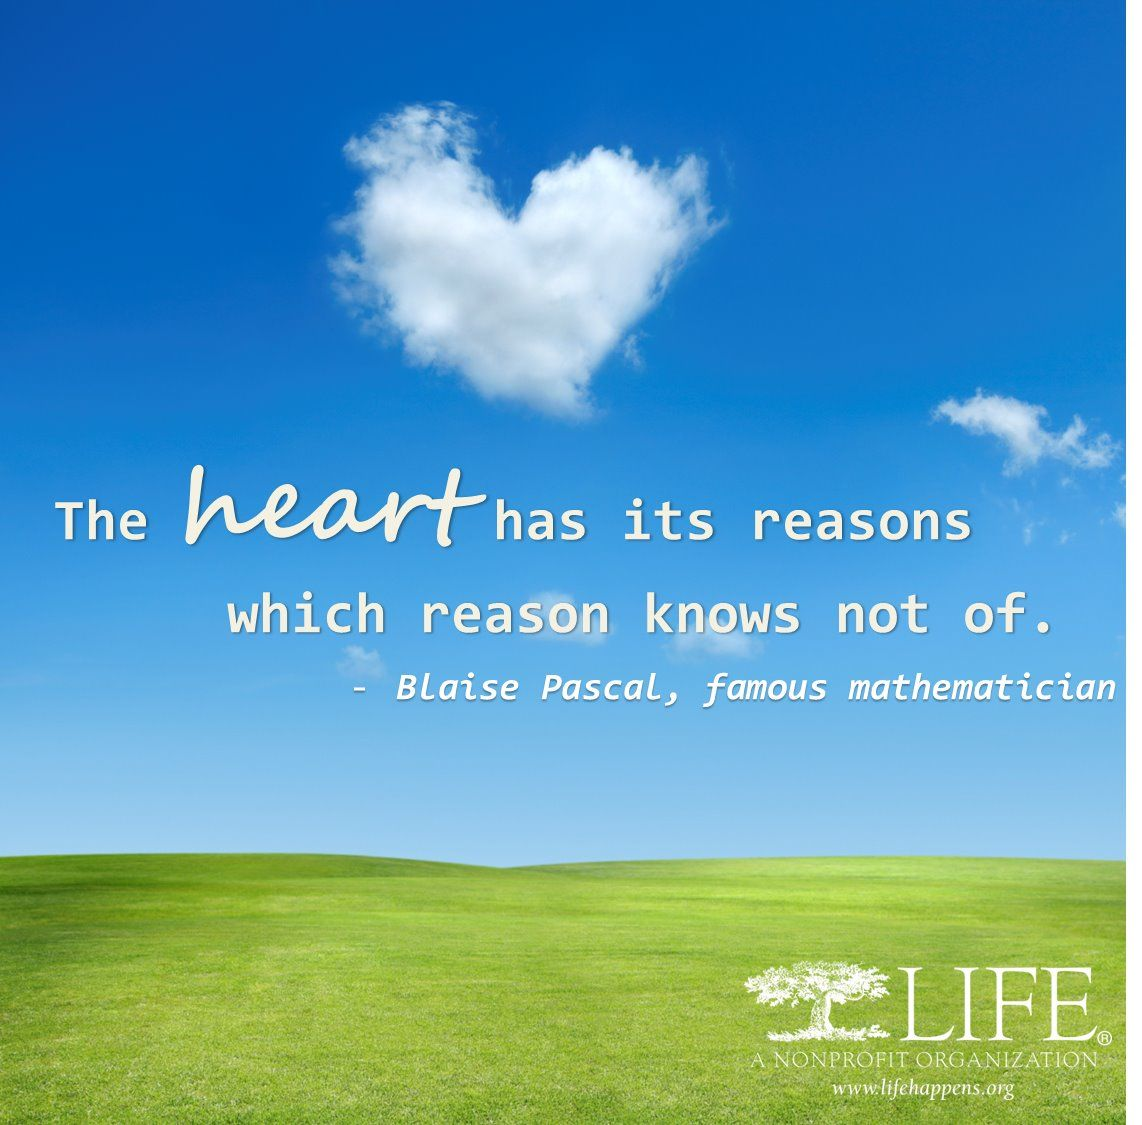 What does your heart tell you?